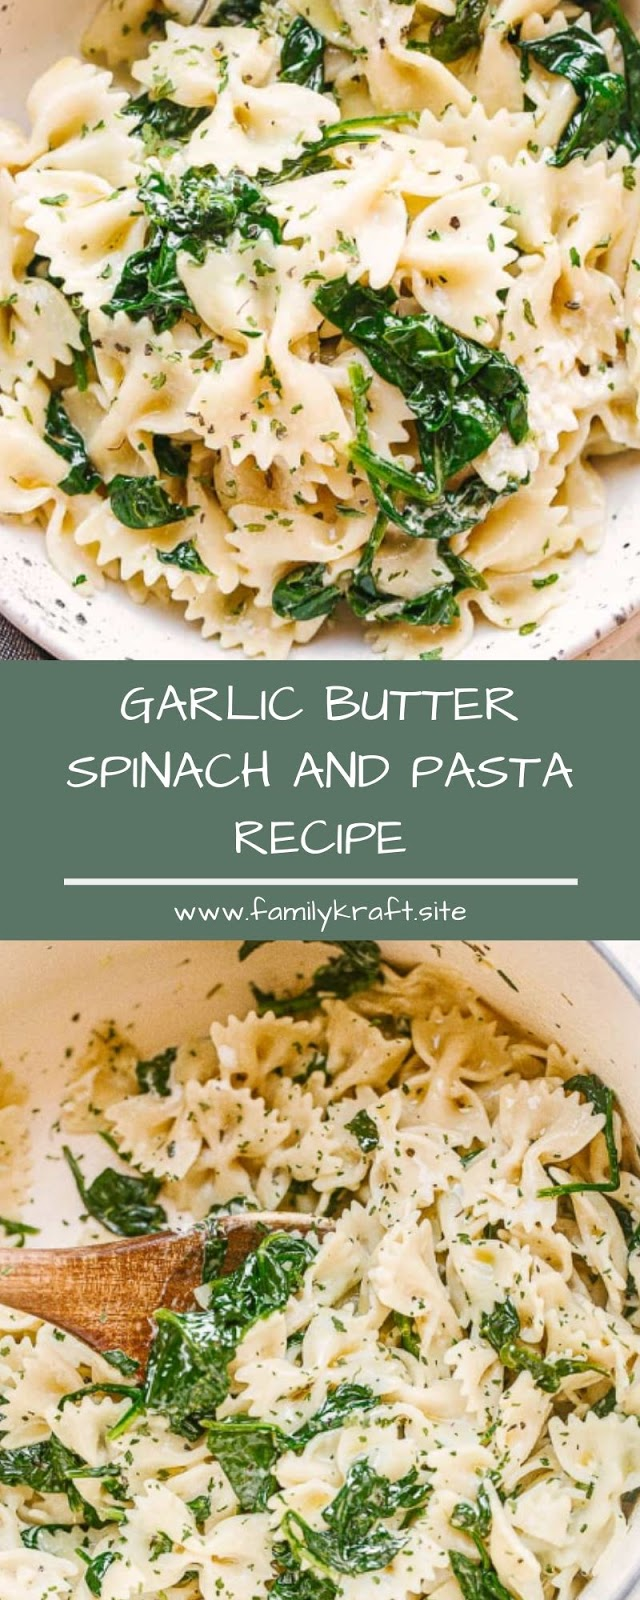 GARLIC BUTTER SPINACH AND PASTA RECIPE